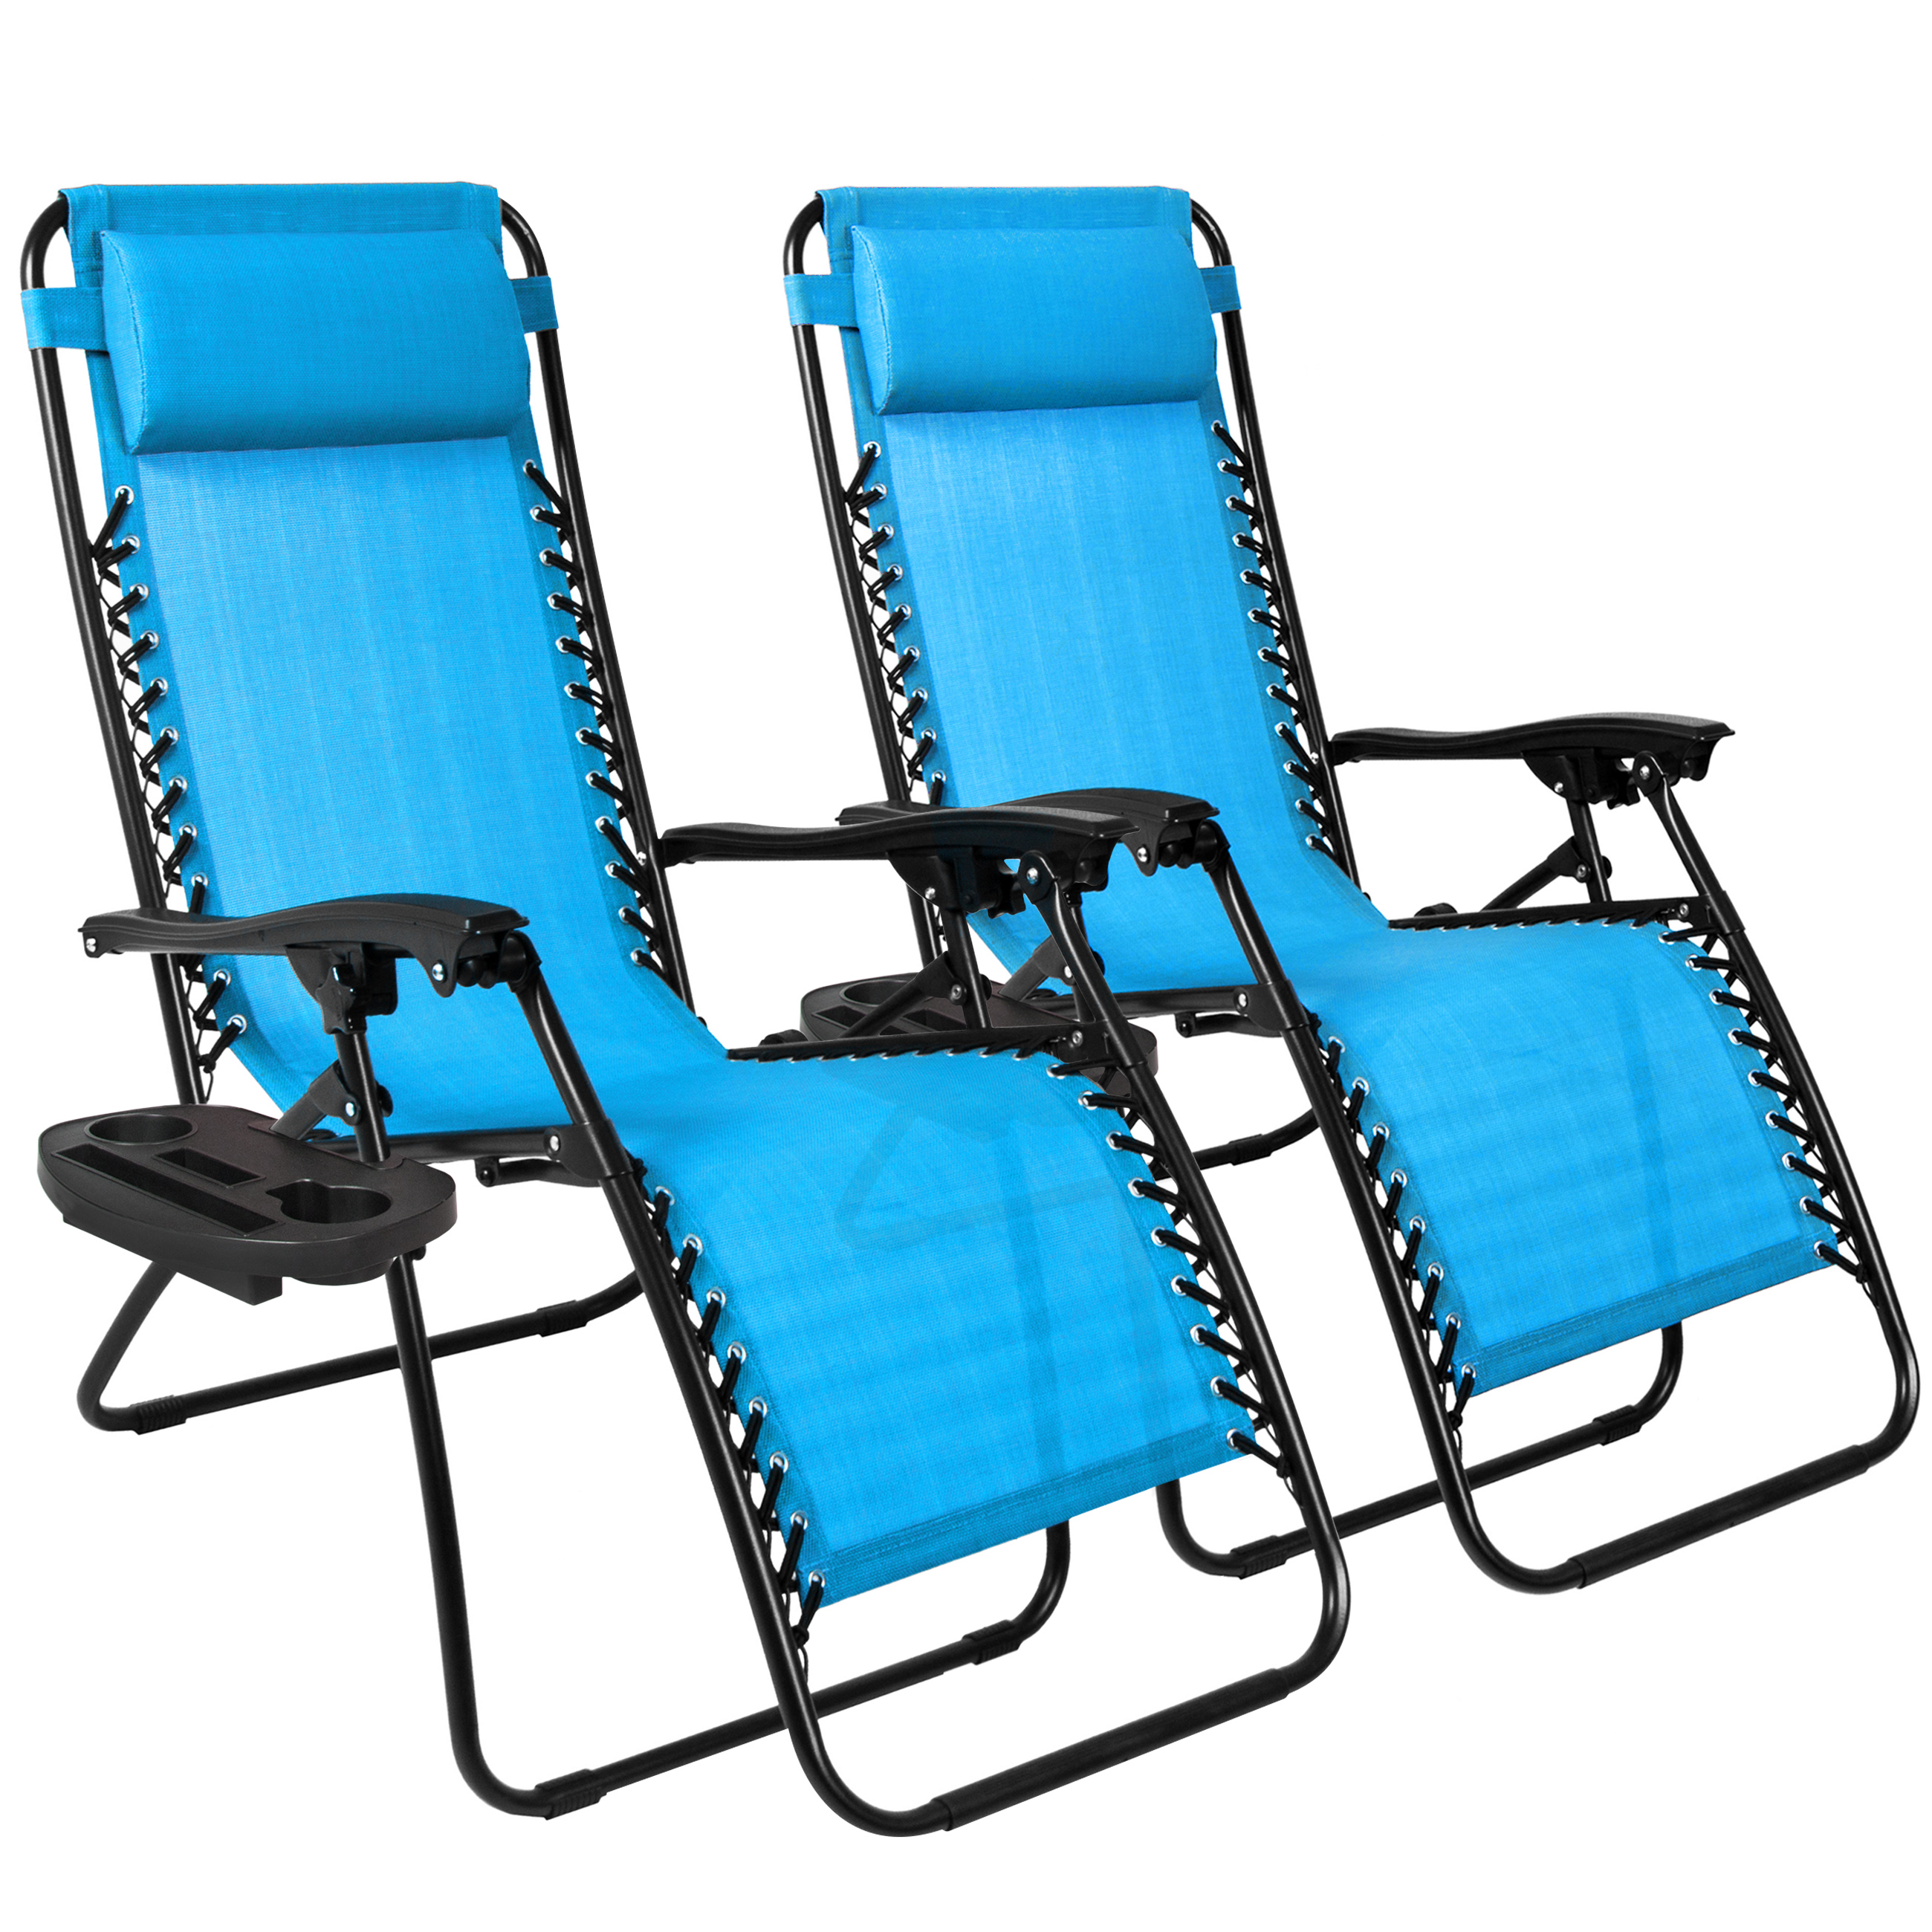 best choice products zero gravity chairs case of 2 lounge patio chairs outdoor yard - Beach Lounge Chairs